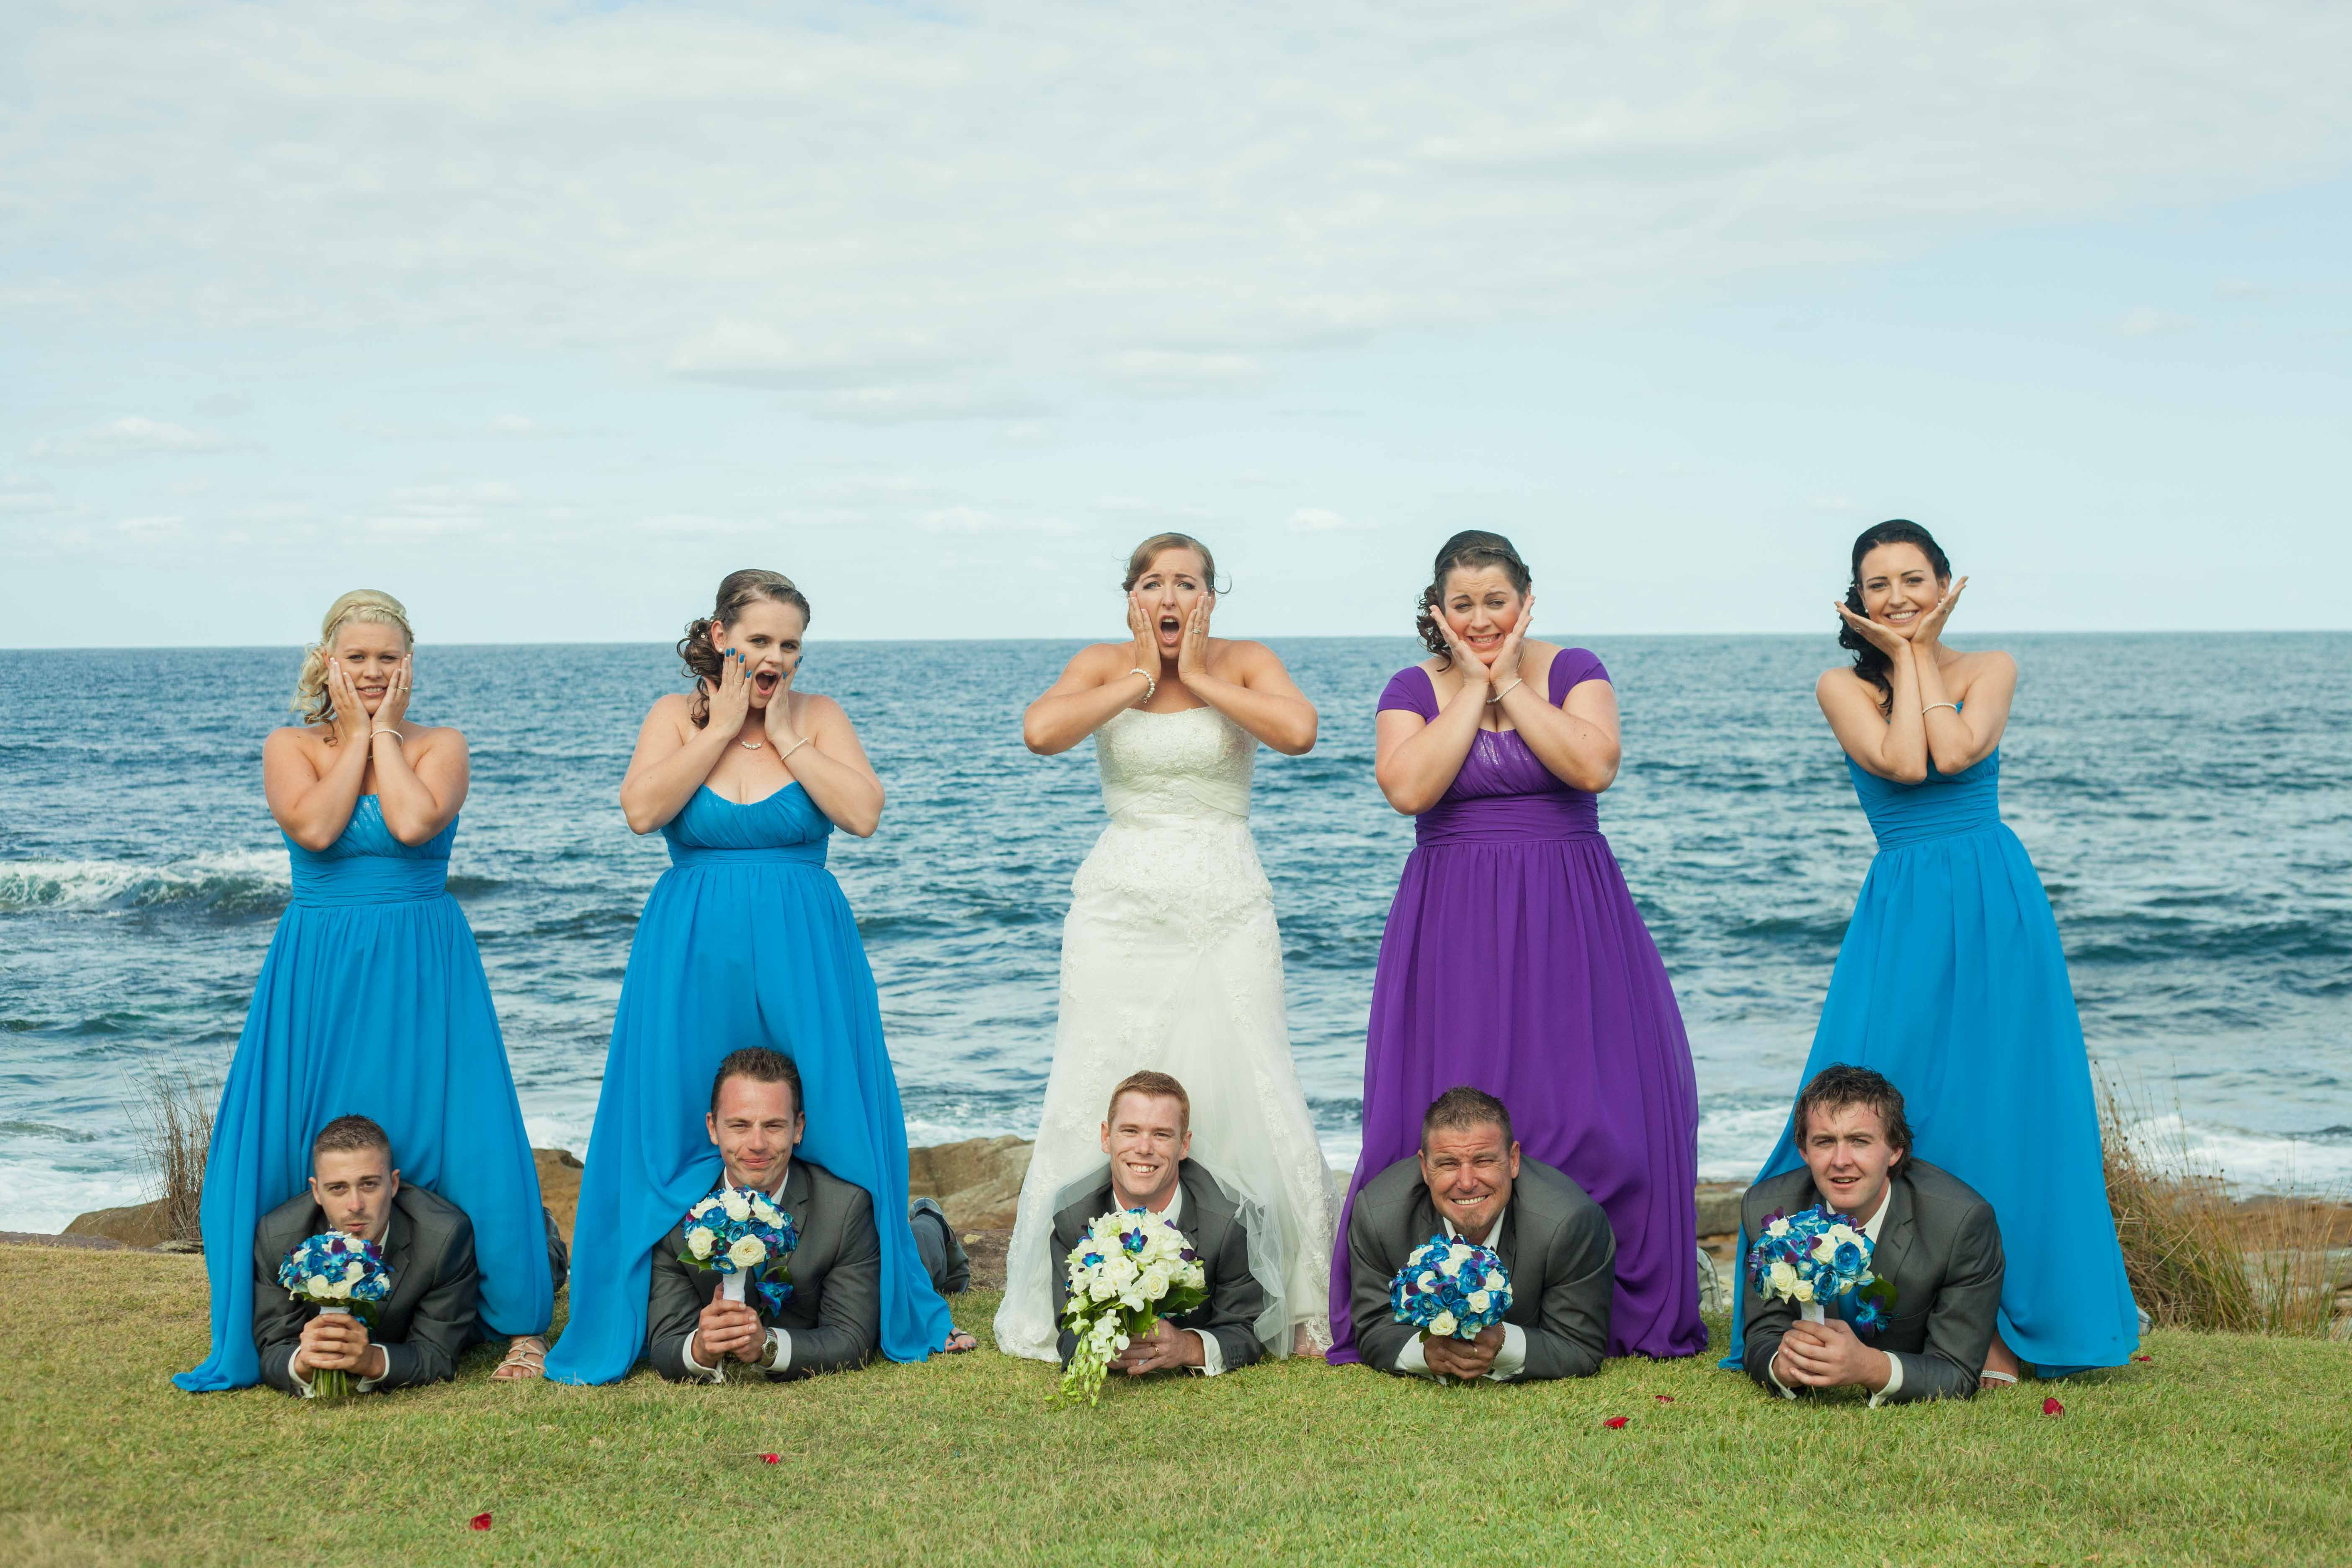 Sydney wedding bridal party with bride and groom